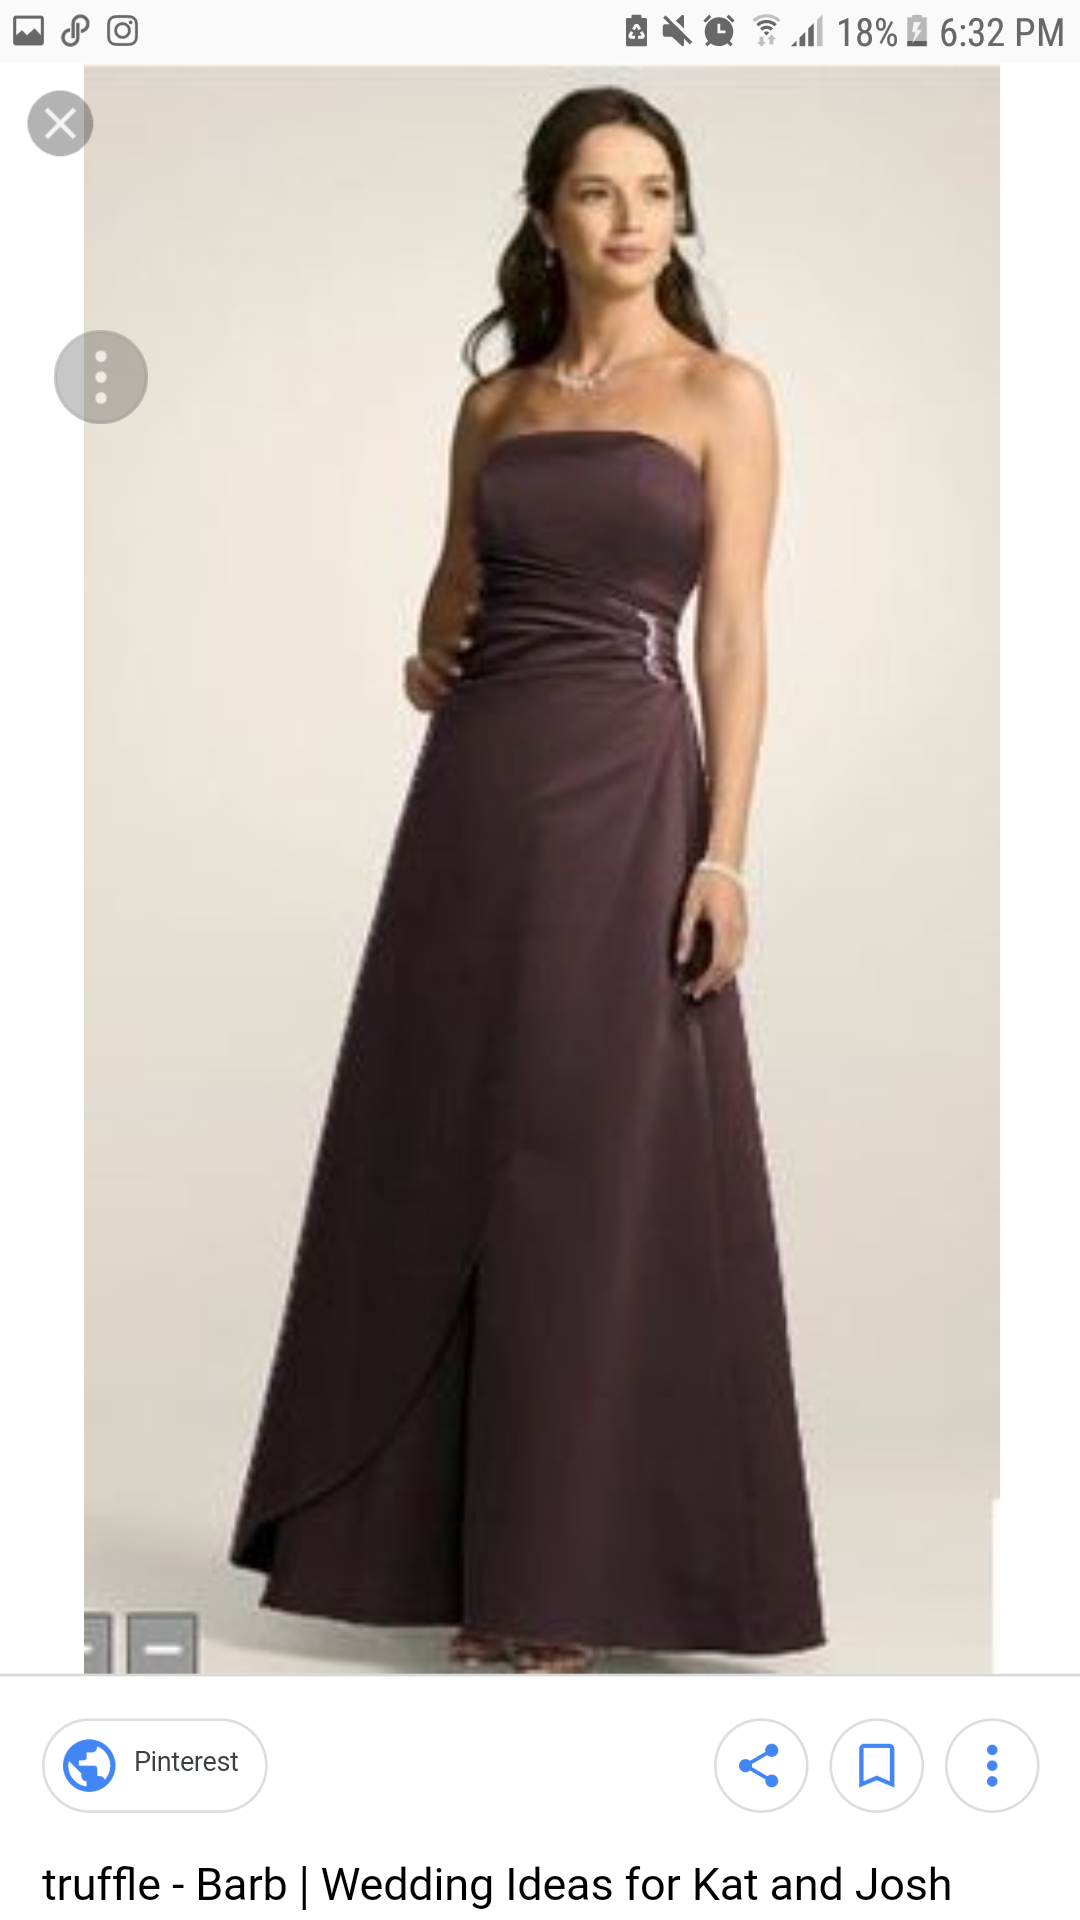 fc42e11bfa9 David s Bridal - Strapless Bridesmaid Dress In Chocolate Color ...